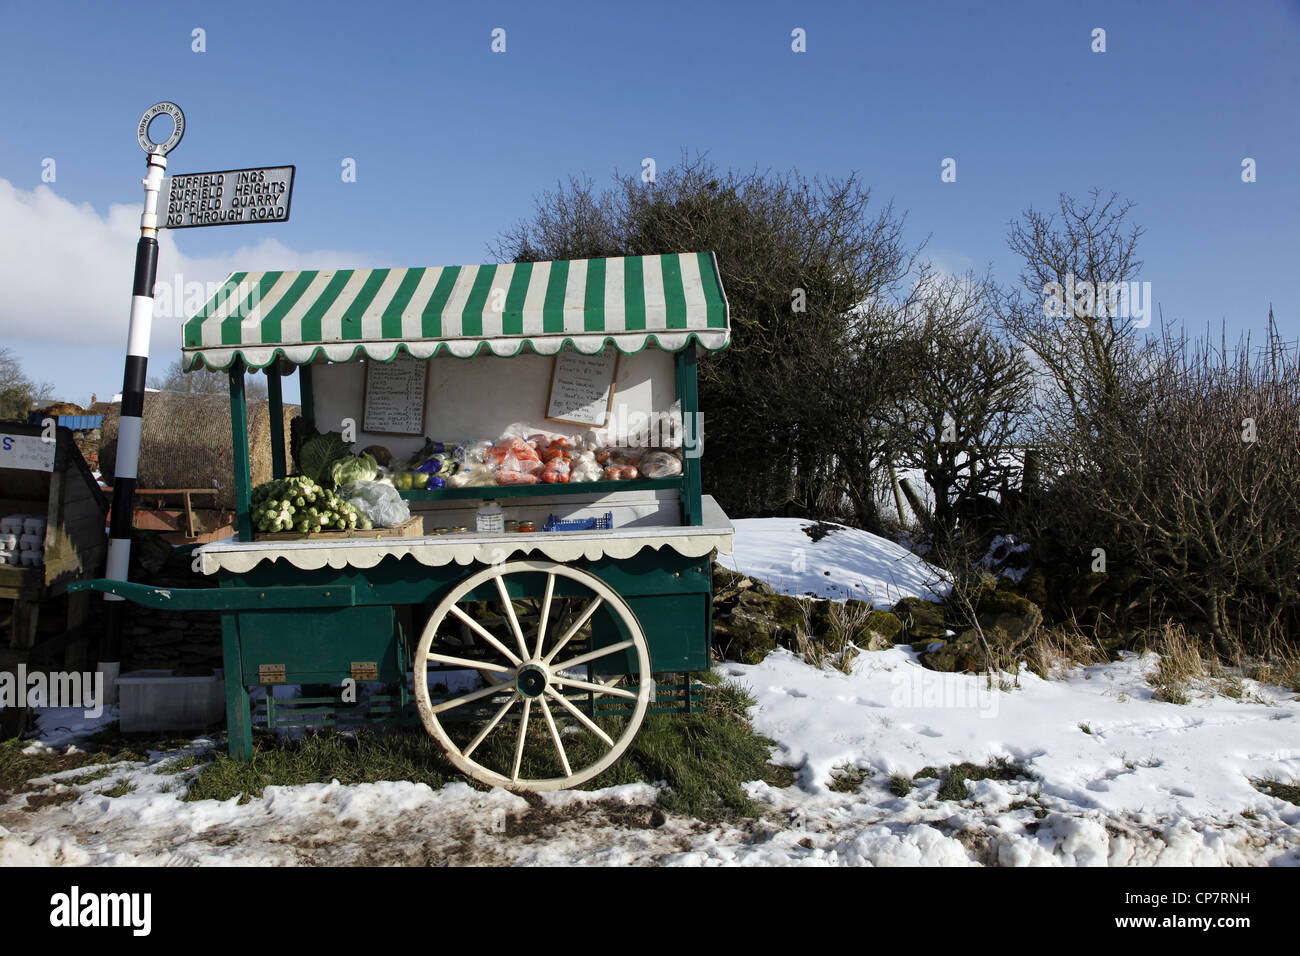 VEGETABLE CART & EGG STALL SUFFIELD NORTH YORKSHIRE ENGLAND 06 February 2012 - Stock Image